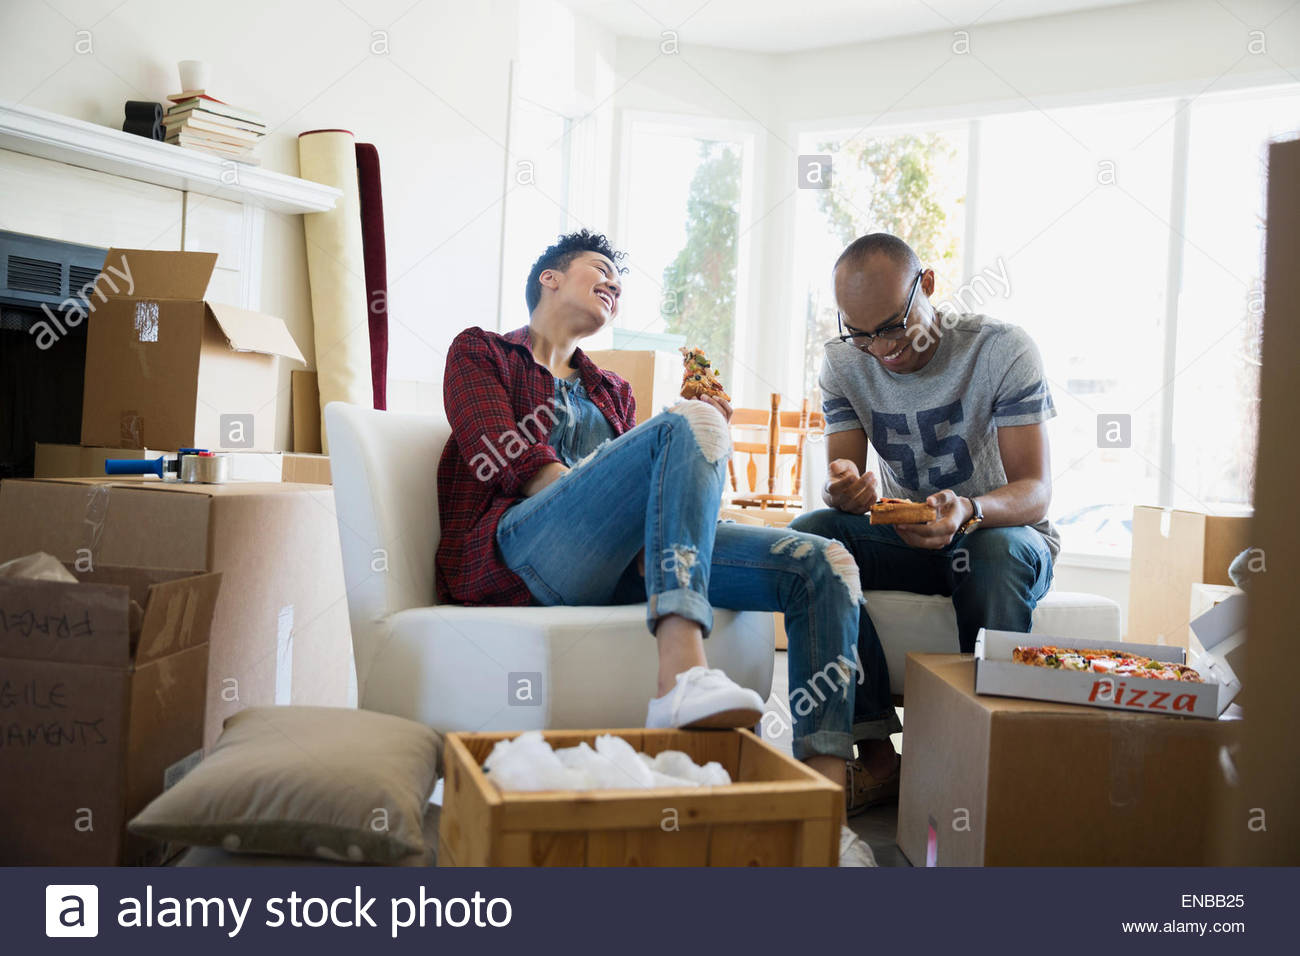 Couple surrounded by moving boxes enjoying takeout pizza - Stock Image